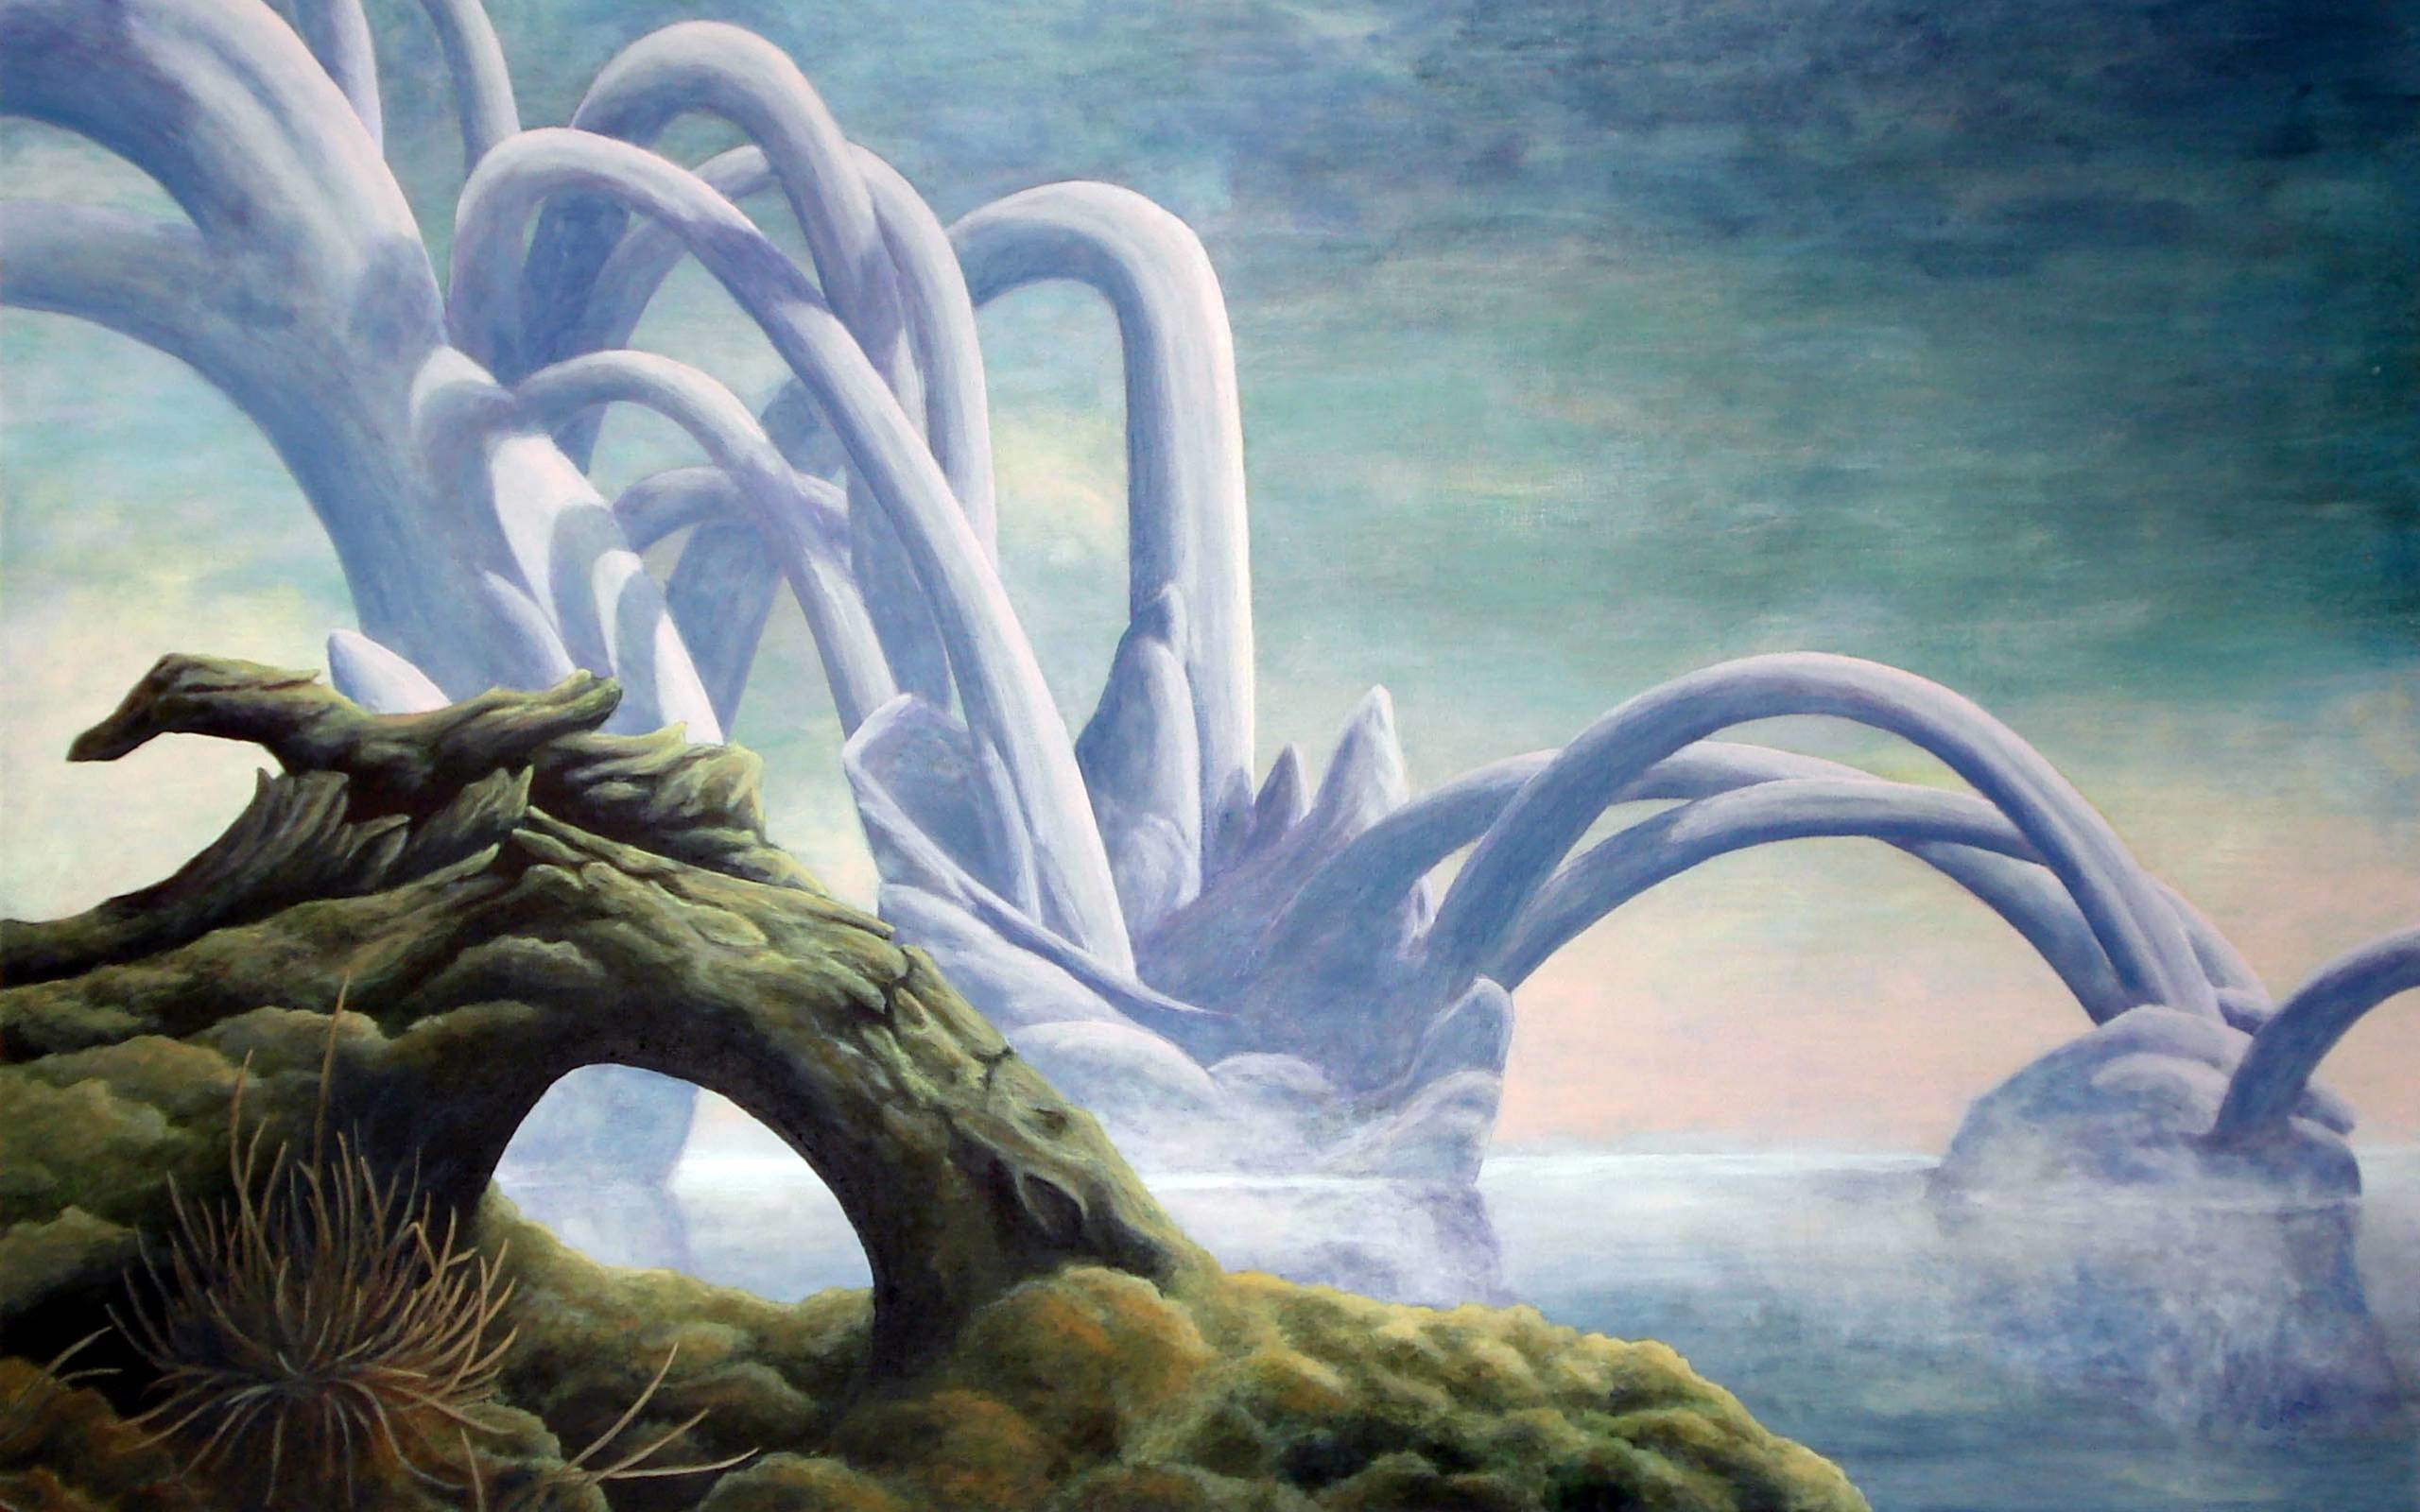 2560x1600 Download Roger Dean Wallpaper  | Wallpoper #373796